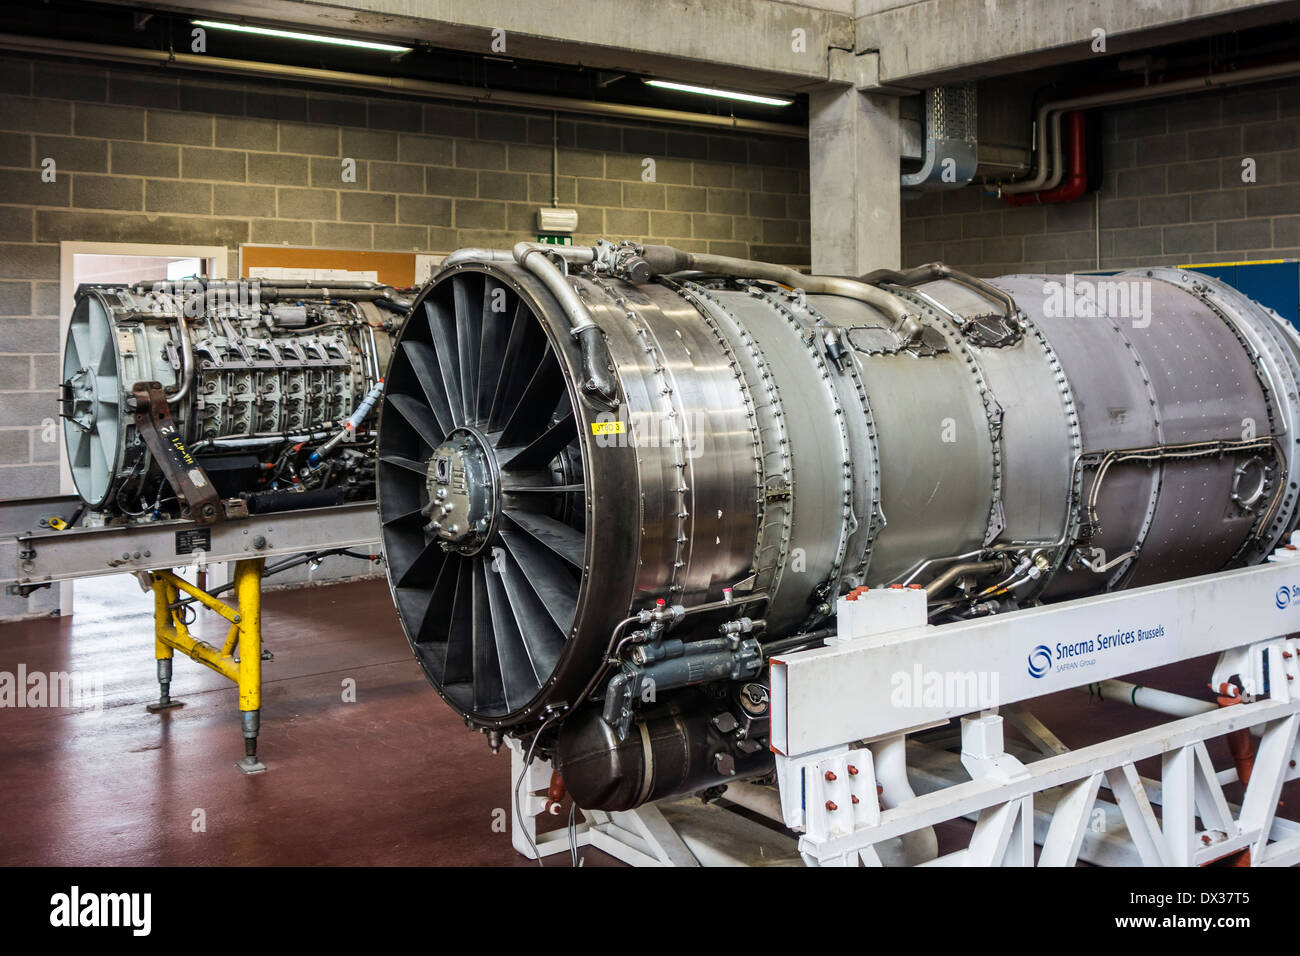 Jet engines for teaching purposes in workshop of the VLOC / Flemish aviation training center in Ostend, Belgium - Stock Image